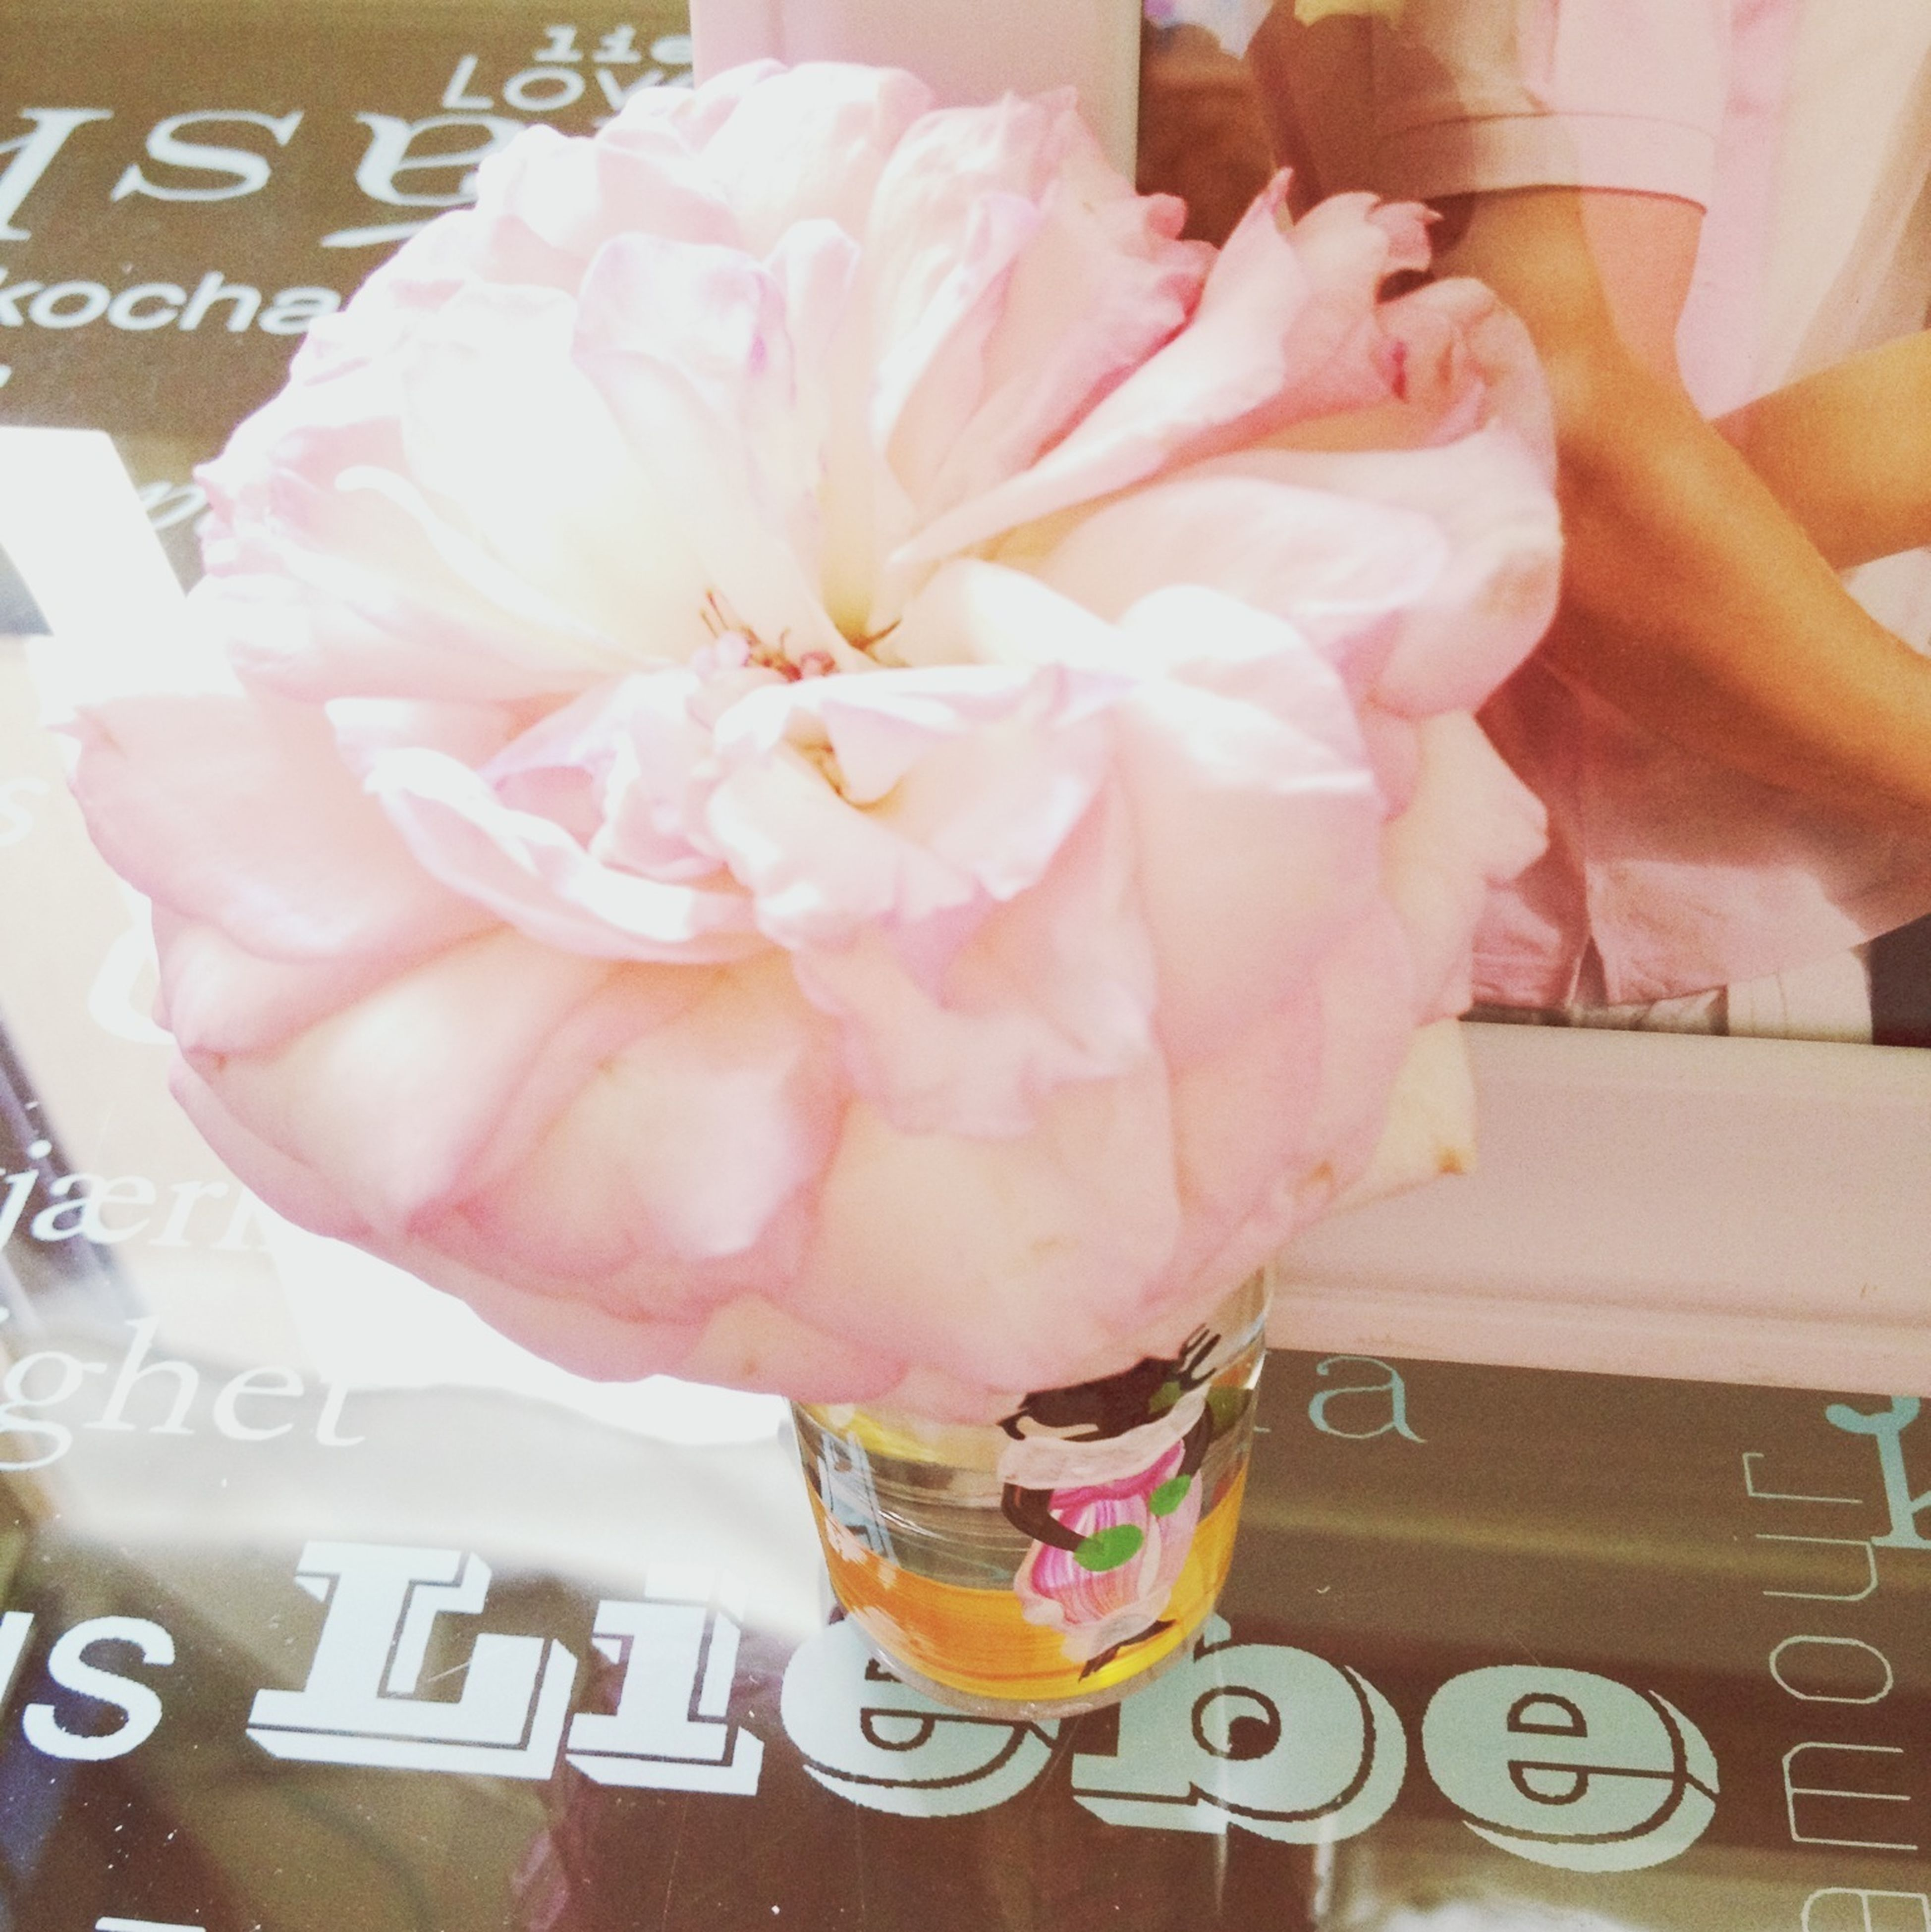 indoors, text, western script, communication, person, flower, paper, close-up, pink color, part of, high angle view, holding, freshness, cropped, non-western script, book